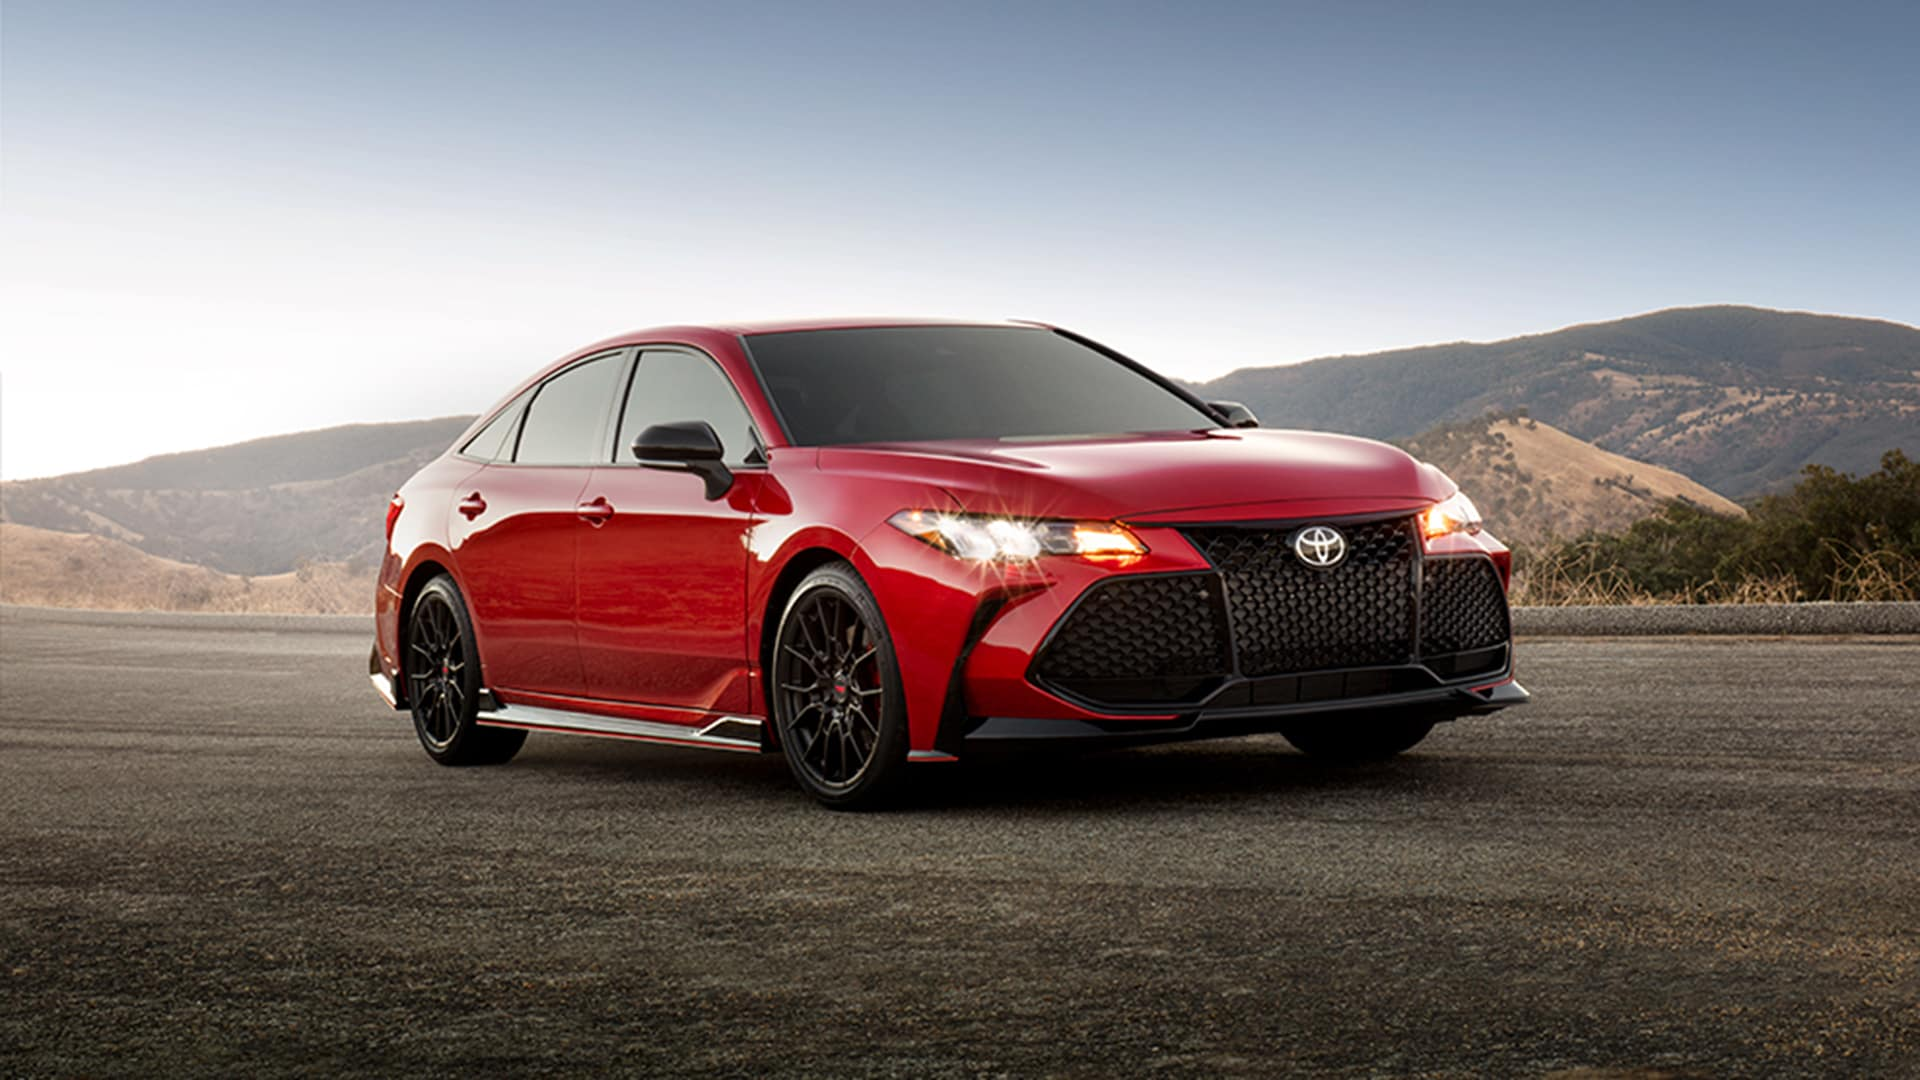 Lancaster Toyota is a new and used Car Dealer near Elizabethtown, PA | Red MY20 Toyota Avalon parked on road in front of mountains